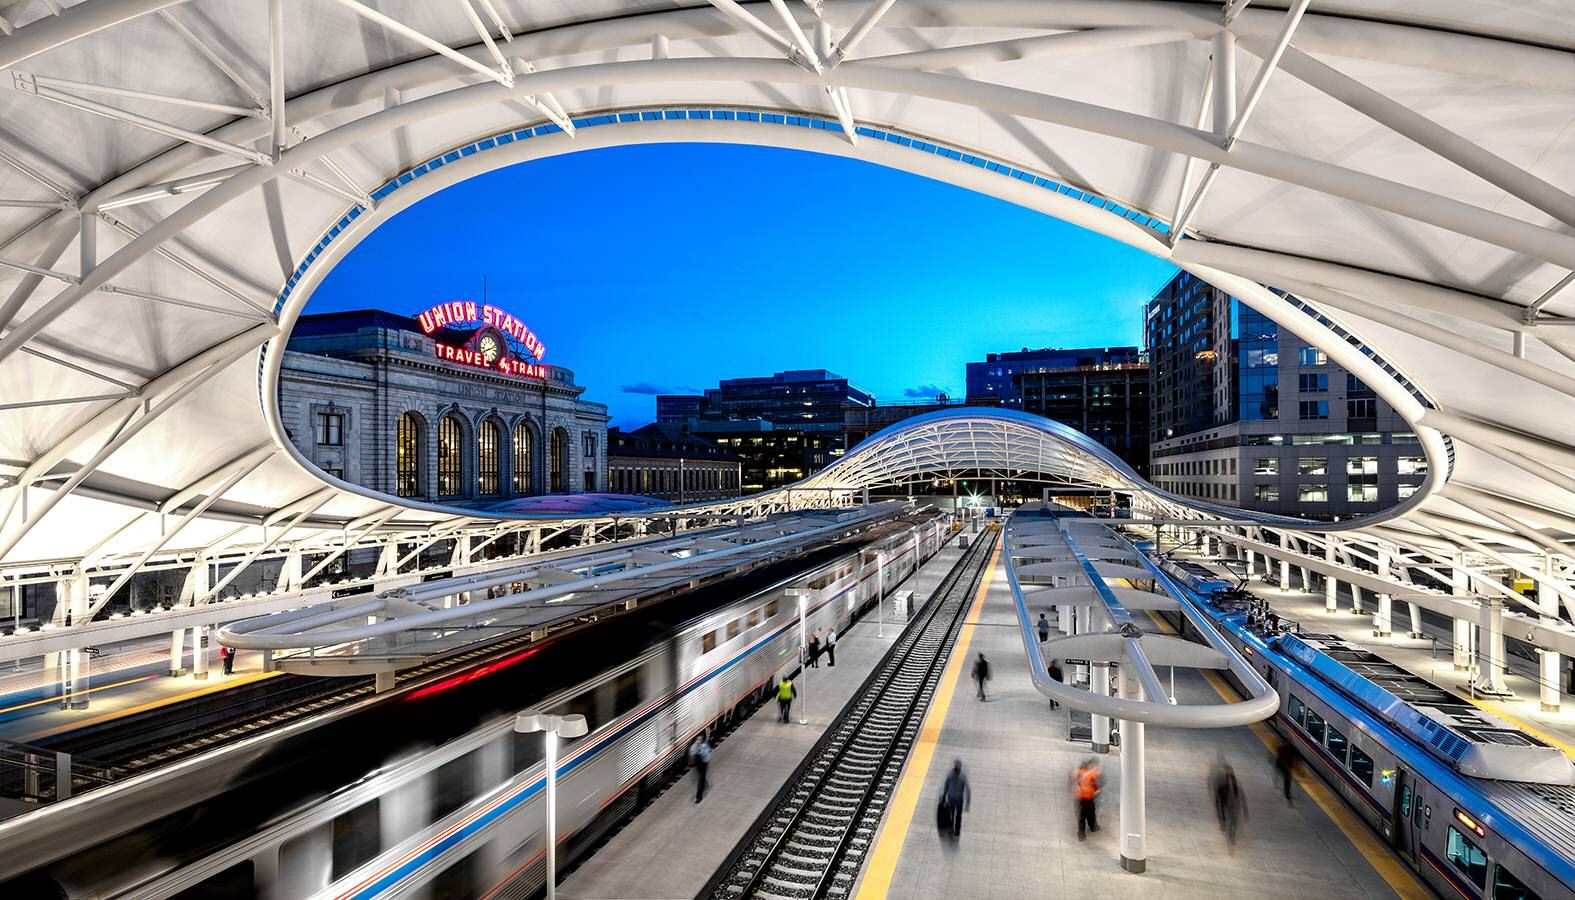 Denver's historic Union Station is a Beaux Arts masterpiece located on the edge of the city's central business district. SOM was commissioned to expand and transform this station into a major regional transportation hub. To do so, the firm converted